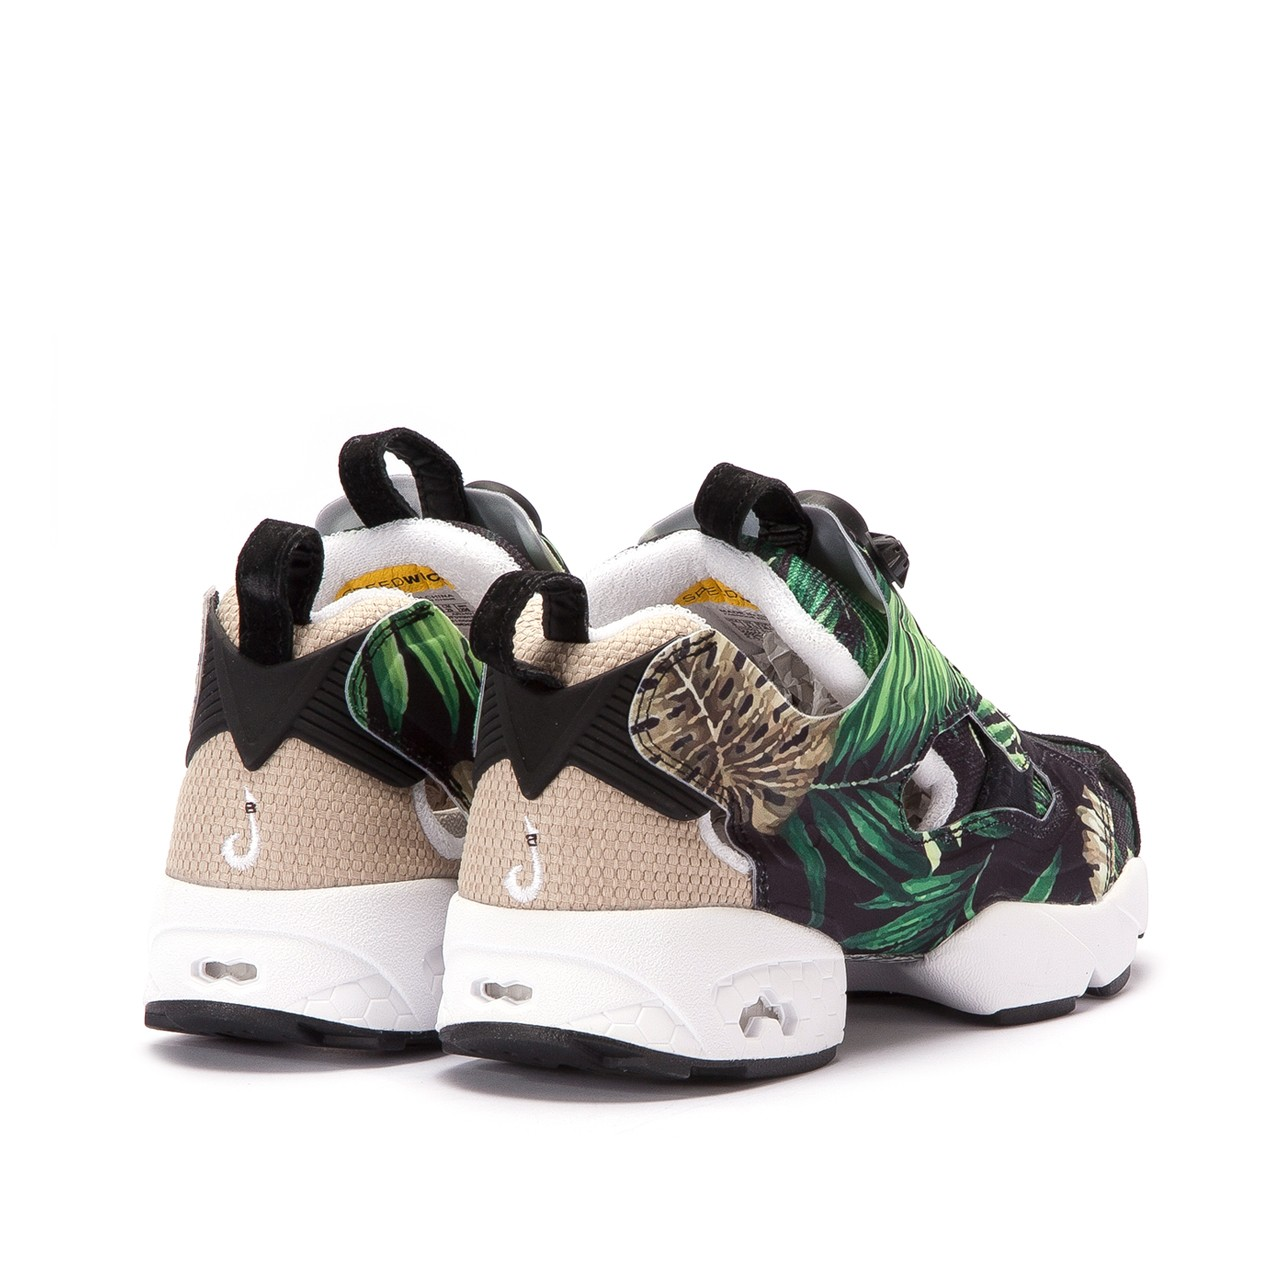 Reebok insta pump – Comes with amazing style and design